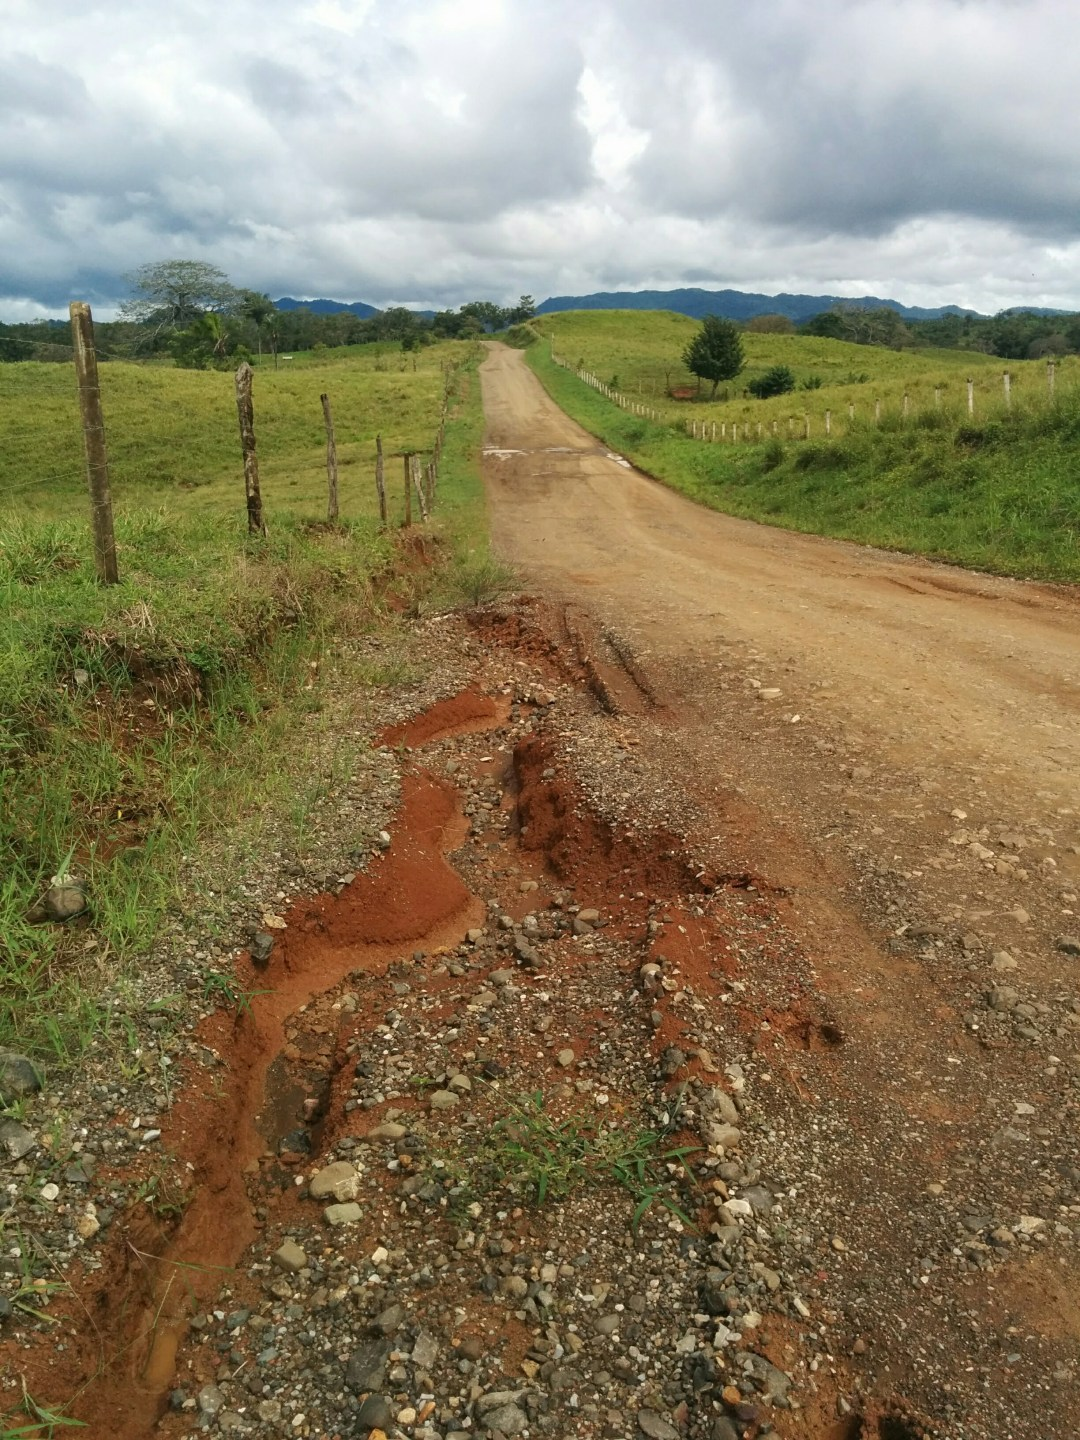 The heavy rains take their toll on the dirt roads.